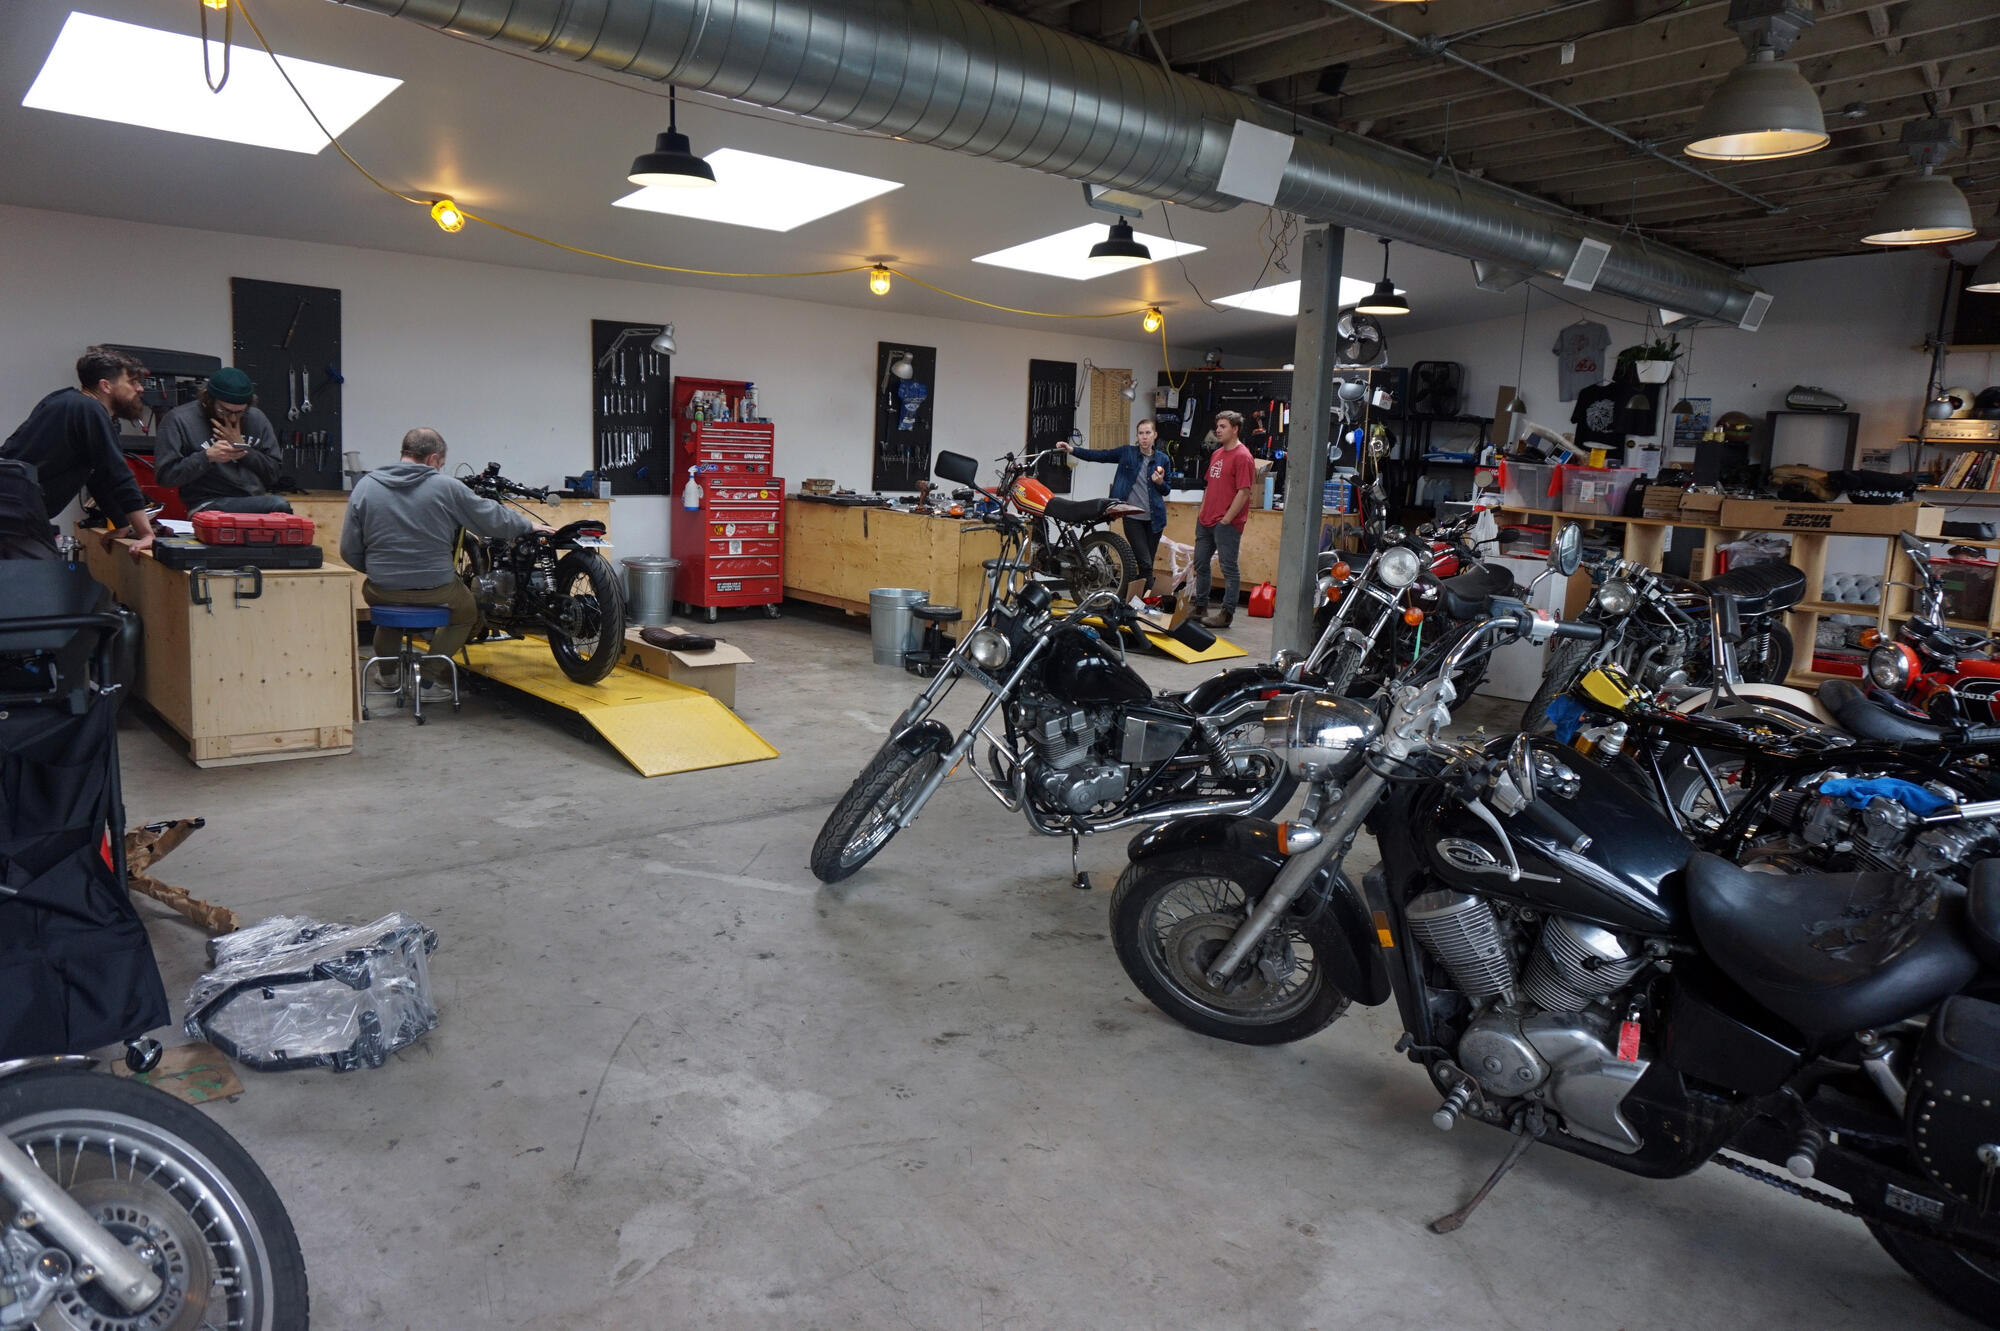 Moto revere diy motorcycle garage in toronto northern ontario travel moto revere torontos diy motorcycle garage solutioingenieria Image collections